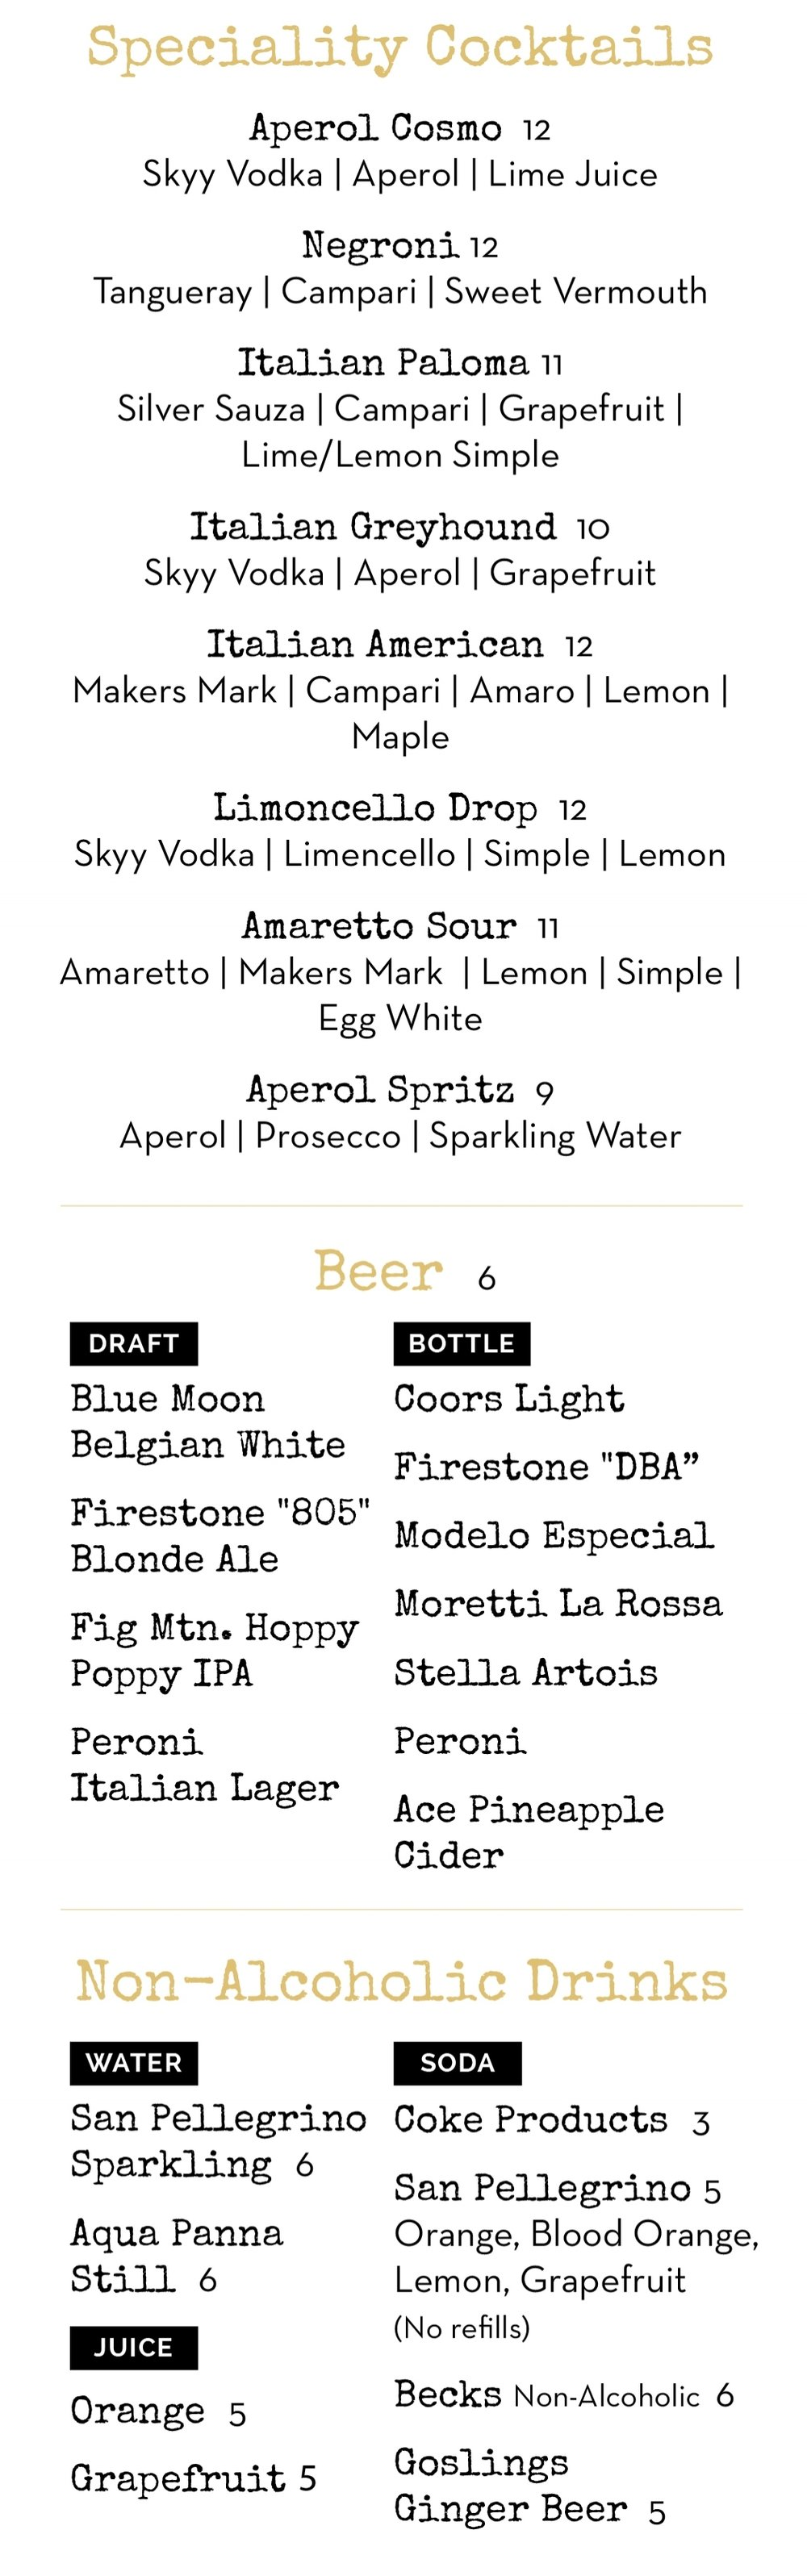 Mizza_DrinkMenu_3.5x13.39_Oct-01.jpg